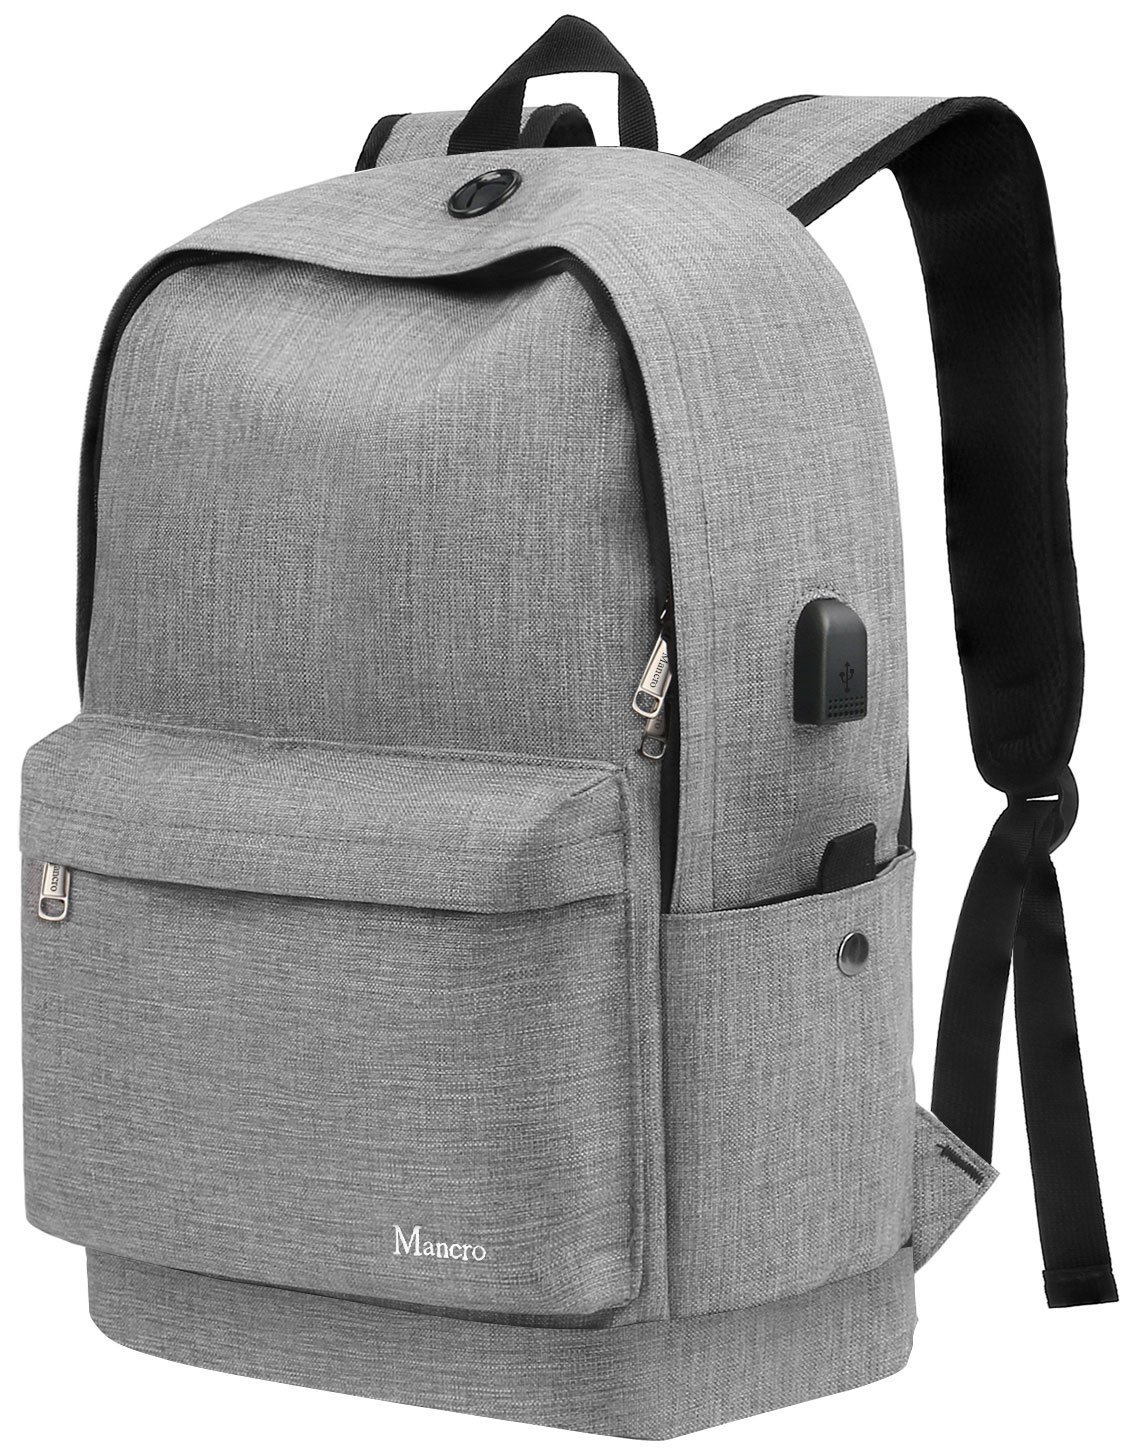 Middle School Backpack, Anti Theft College Student Bookbag w/USB Charging for Teen Girl Boy Men Women, Canvas Water Resistant Computer Daypack For Weekend Travel Outdoor Camping Fit 15.6'' Laptop,Grey